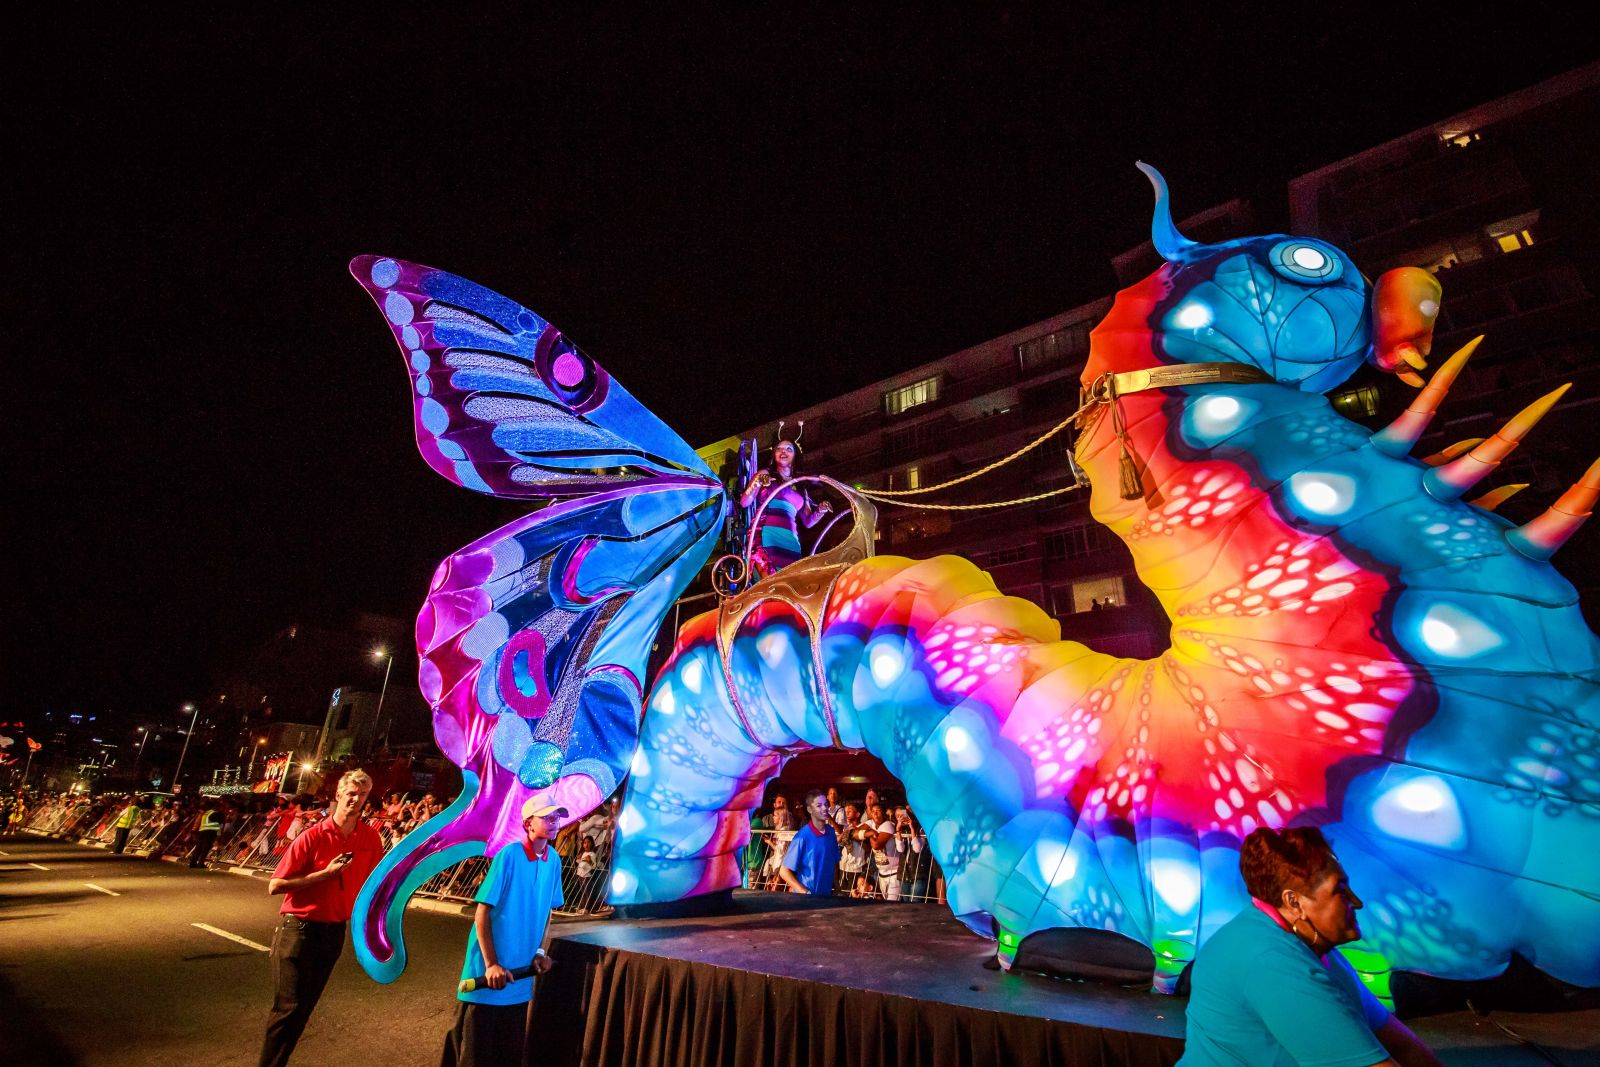 Cape Town Carnival Update: Cape Town Carnival Images 2018